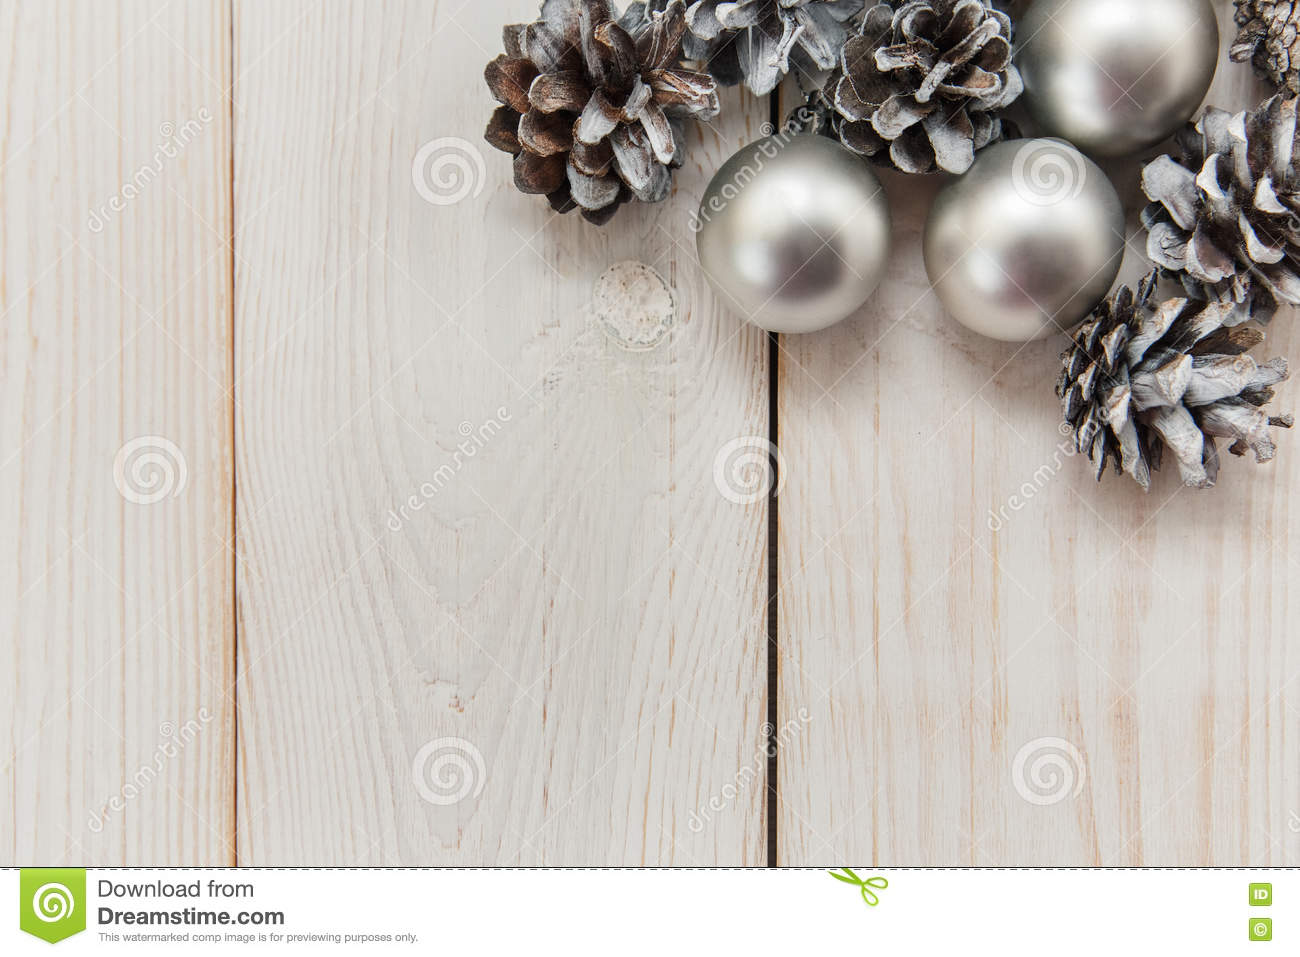 White winter cones on the wooden table with silver balls.Christmas background